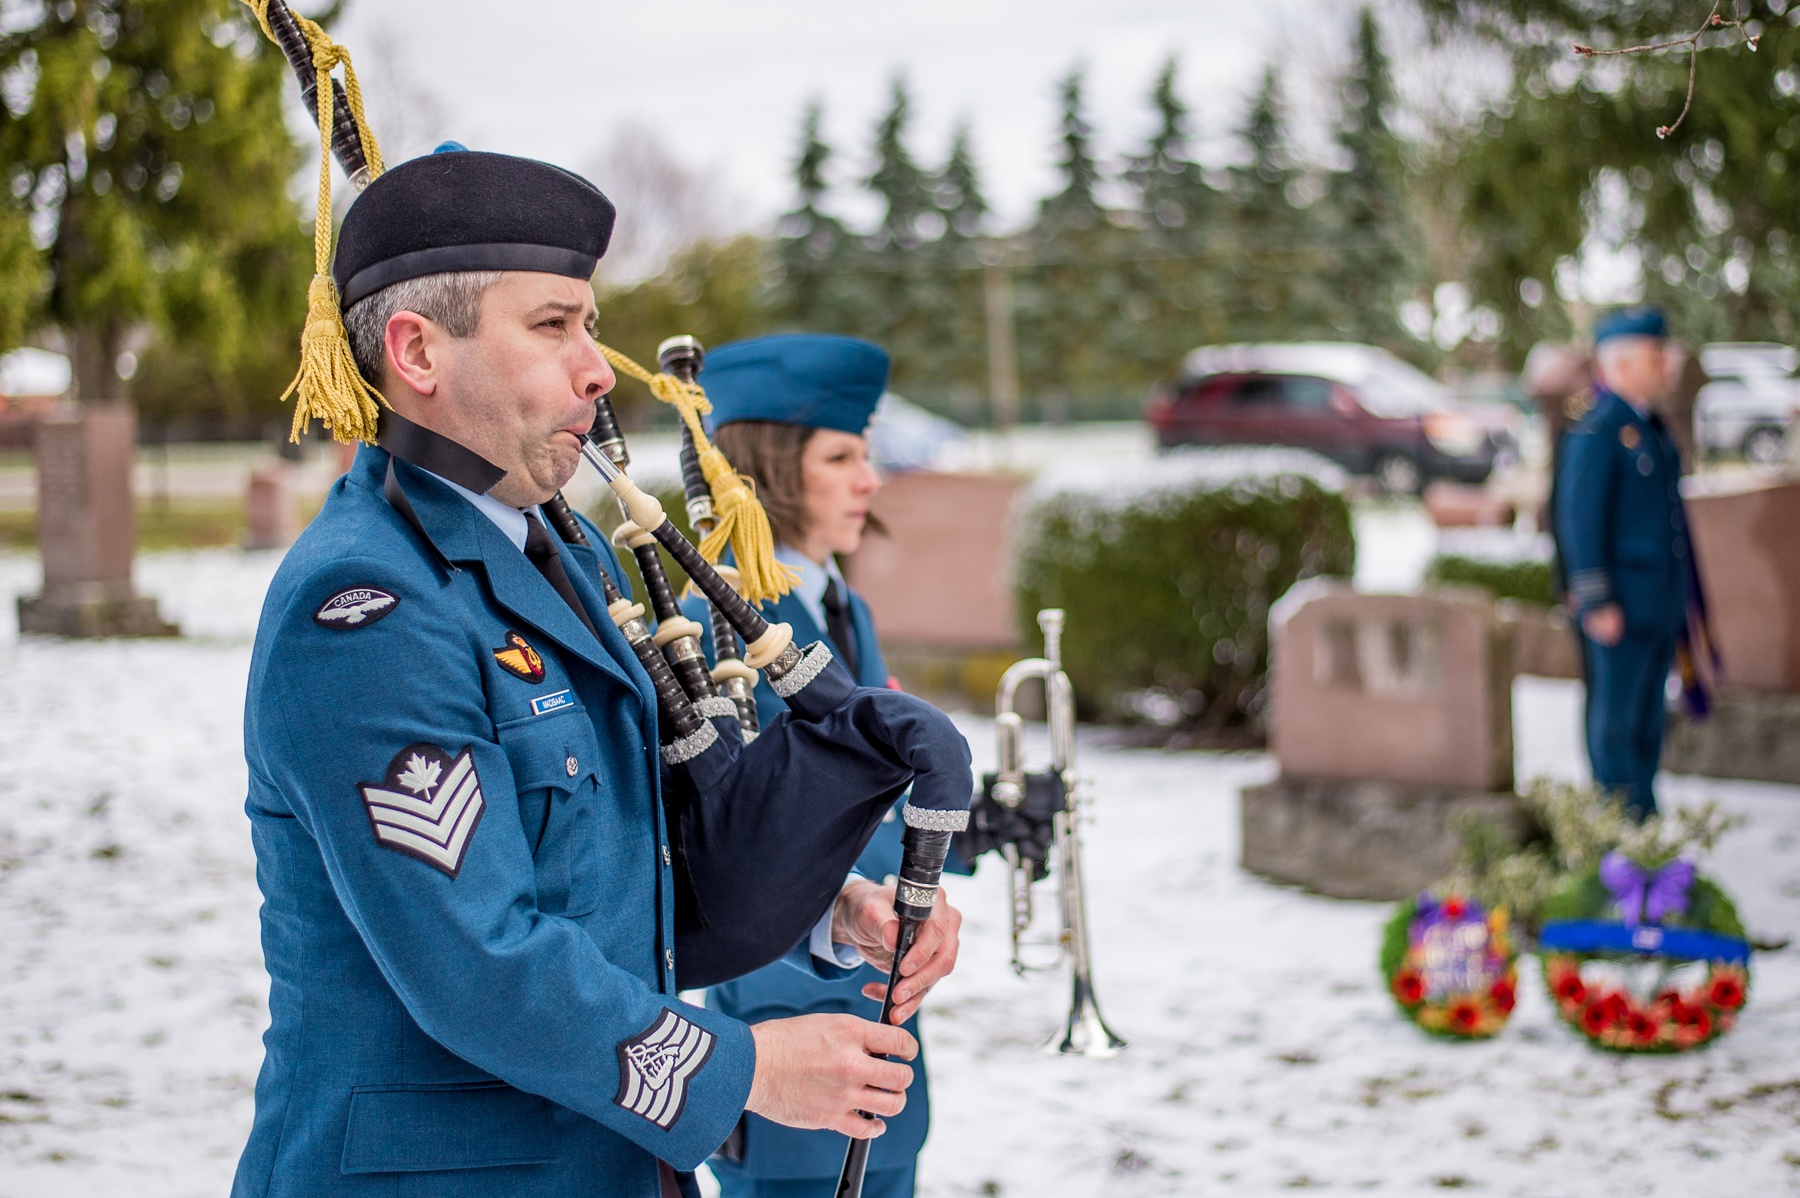 Piper Sergeant Matthew MacIsaac plays Lament on the bagpipes during the April 7, 2017, ceremony at Dorchester Union Cemetery, in Dorchester, Ontario, commemorating the 100th anniversary of the death of Cadet James Harold Talbot, the first casualty of Military Flying in Canada, who died in a flight training accident on April 8, 1917. PHOTO: Corporal Aydyn Neifer, BM03-2017-0107-25